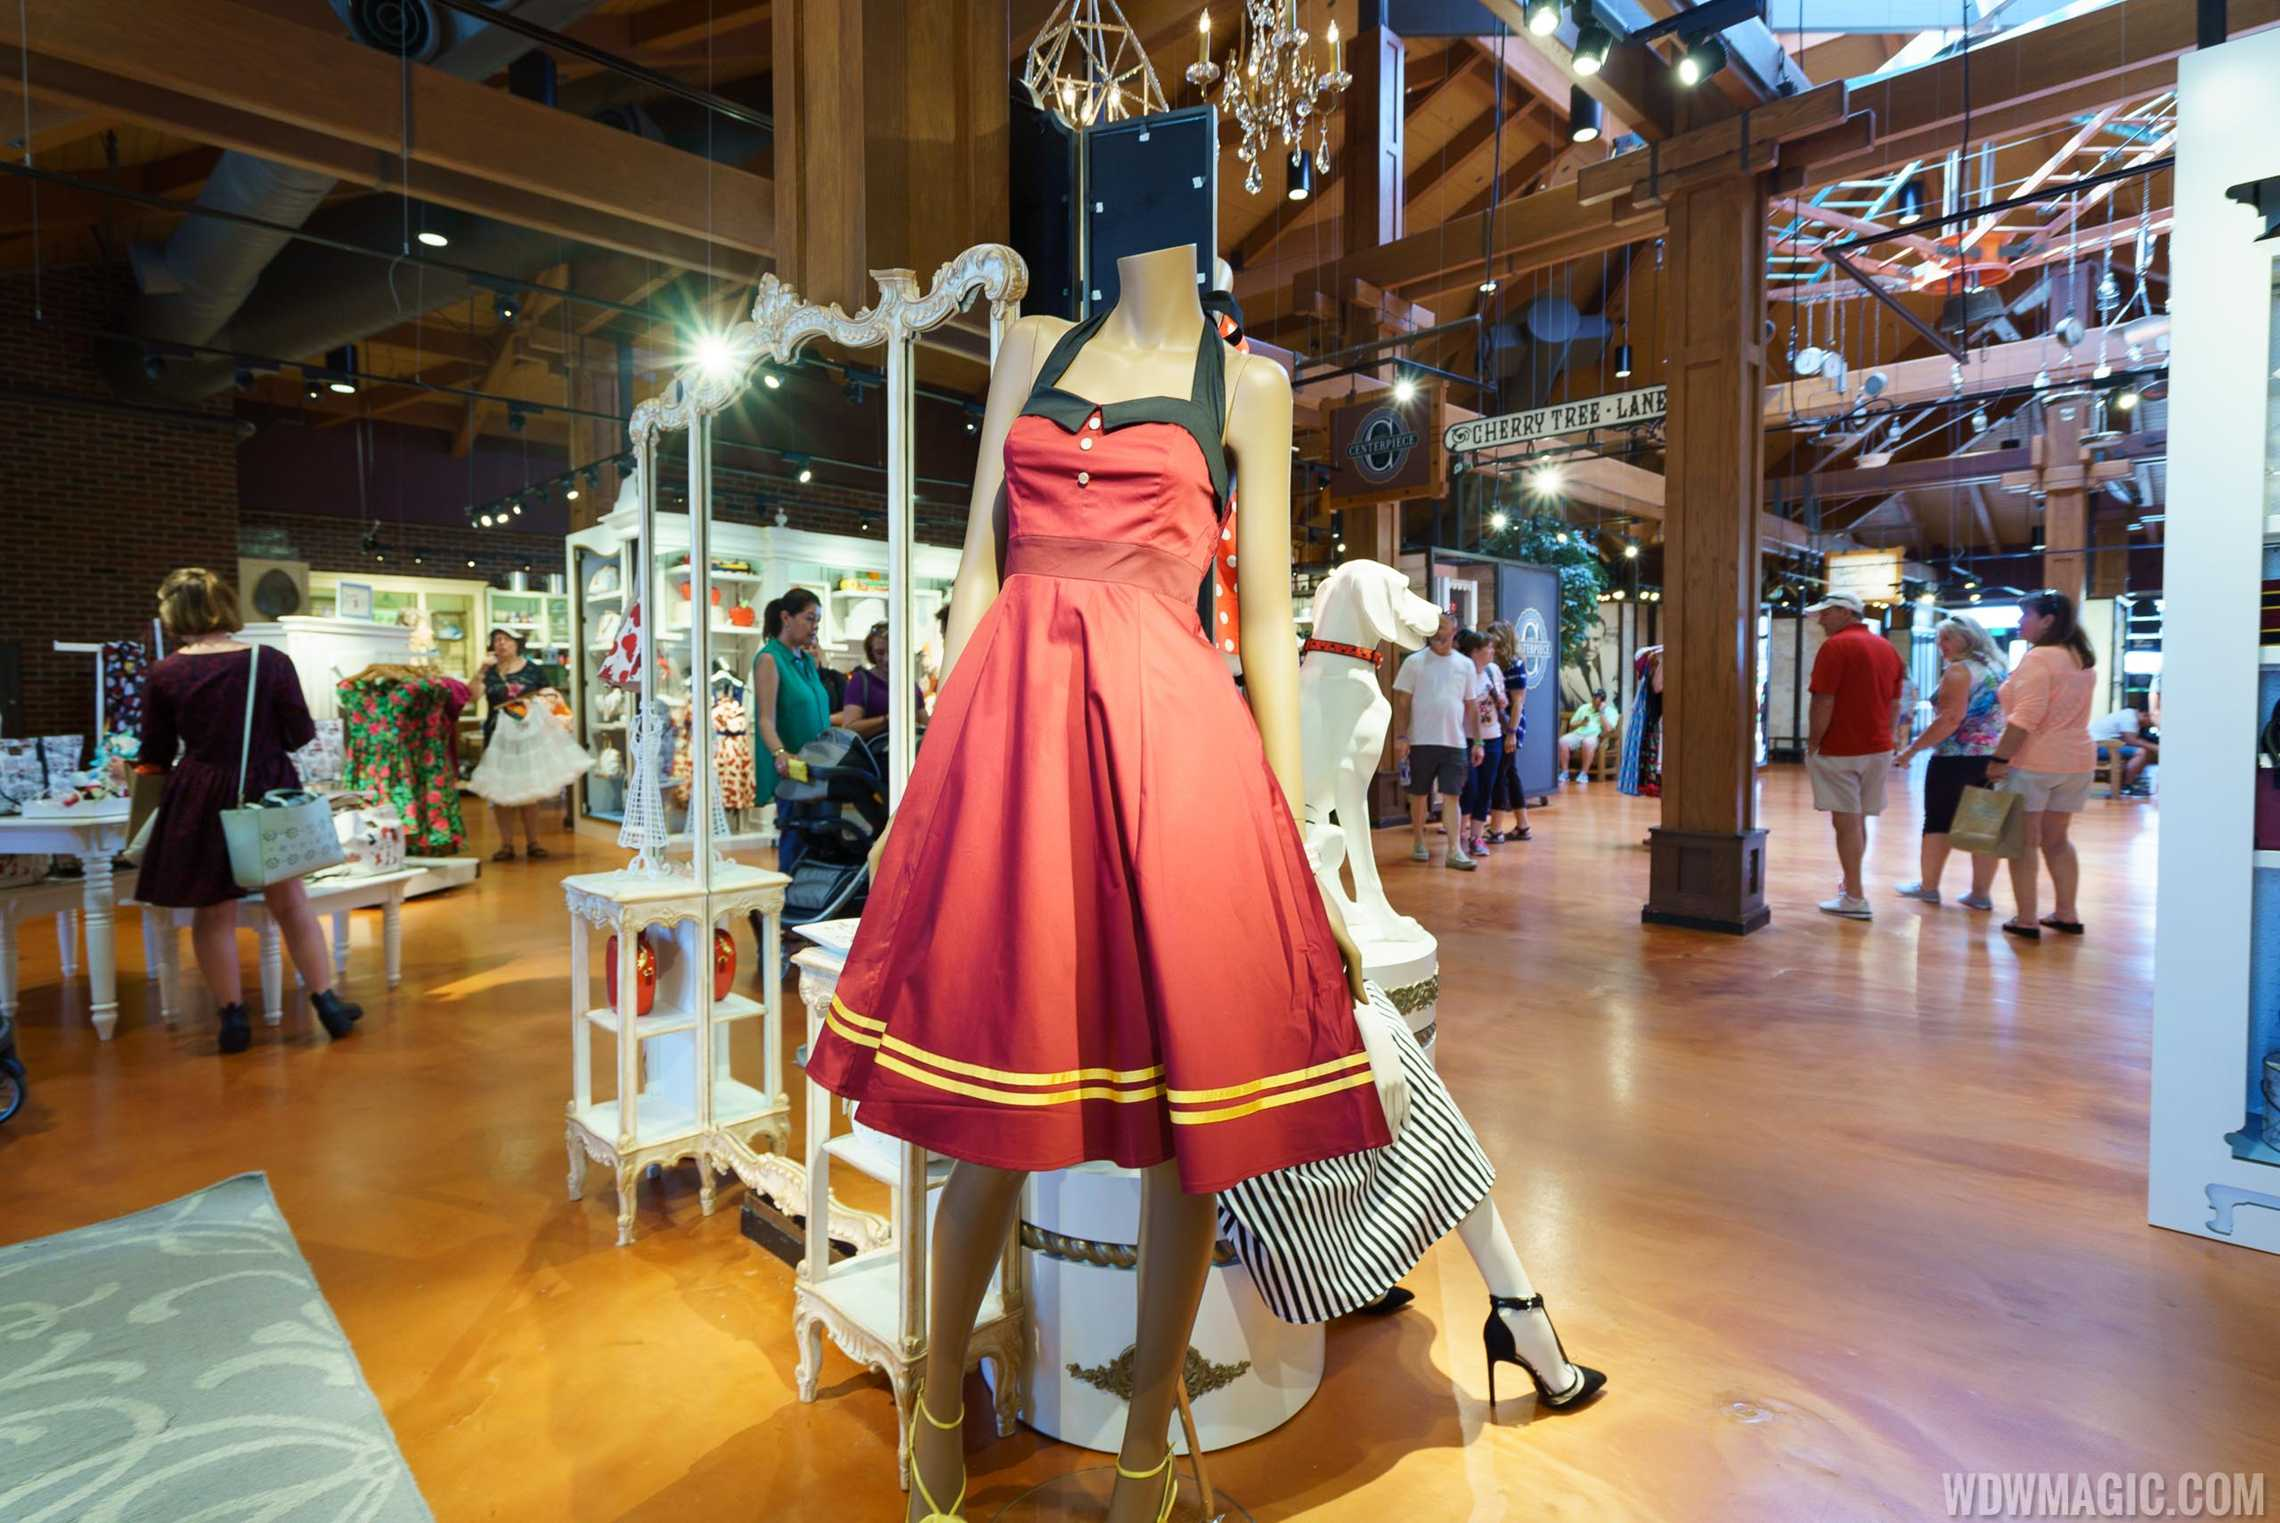 The Dress Shop on Cherry Tree Lane - Hollywood Tower Hotel display